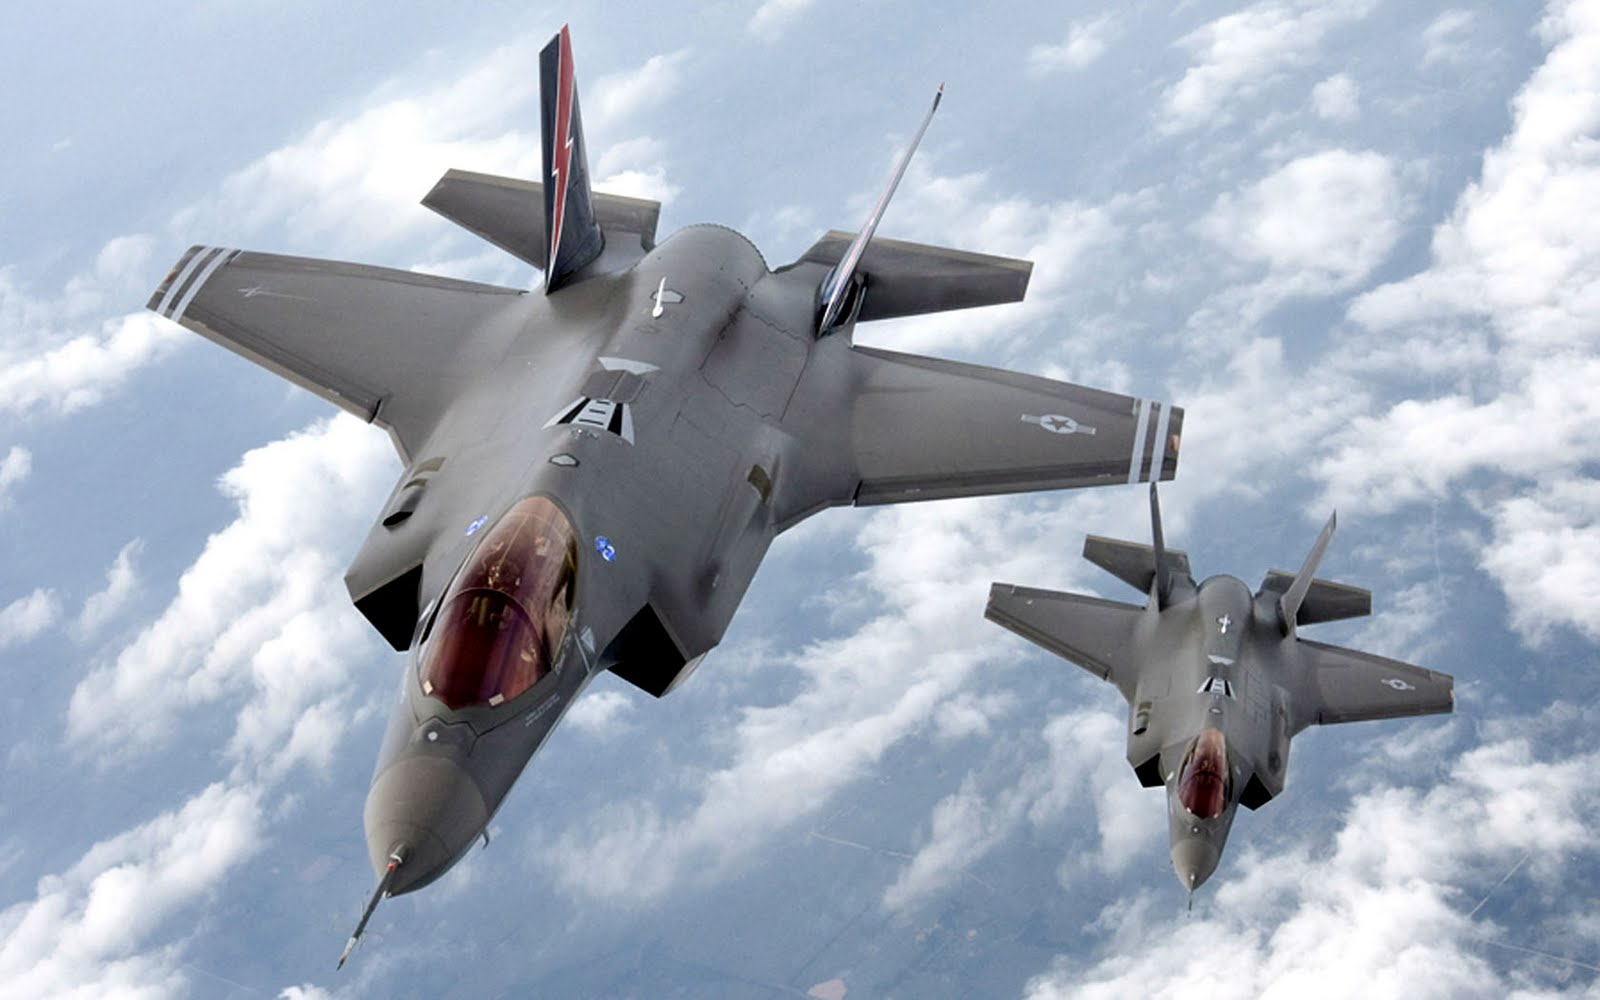 Hurriyet: 'U.S. is threatening with non-delivery of the F-35 due to the S-400 purchase'